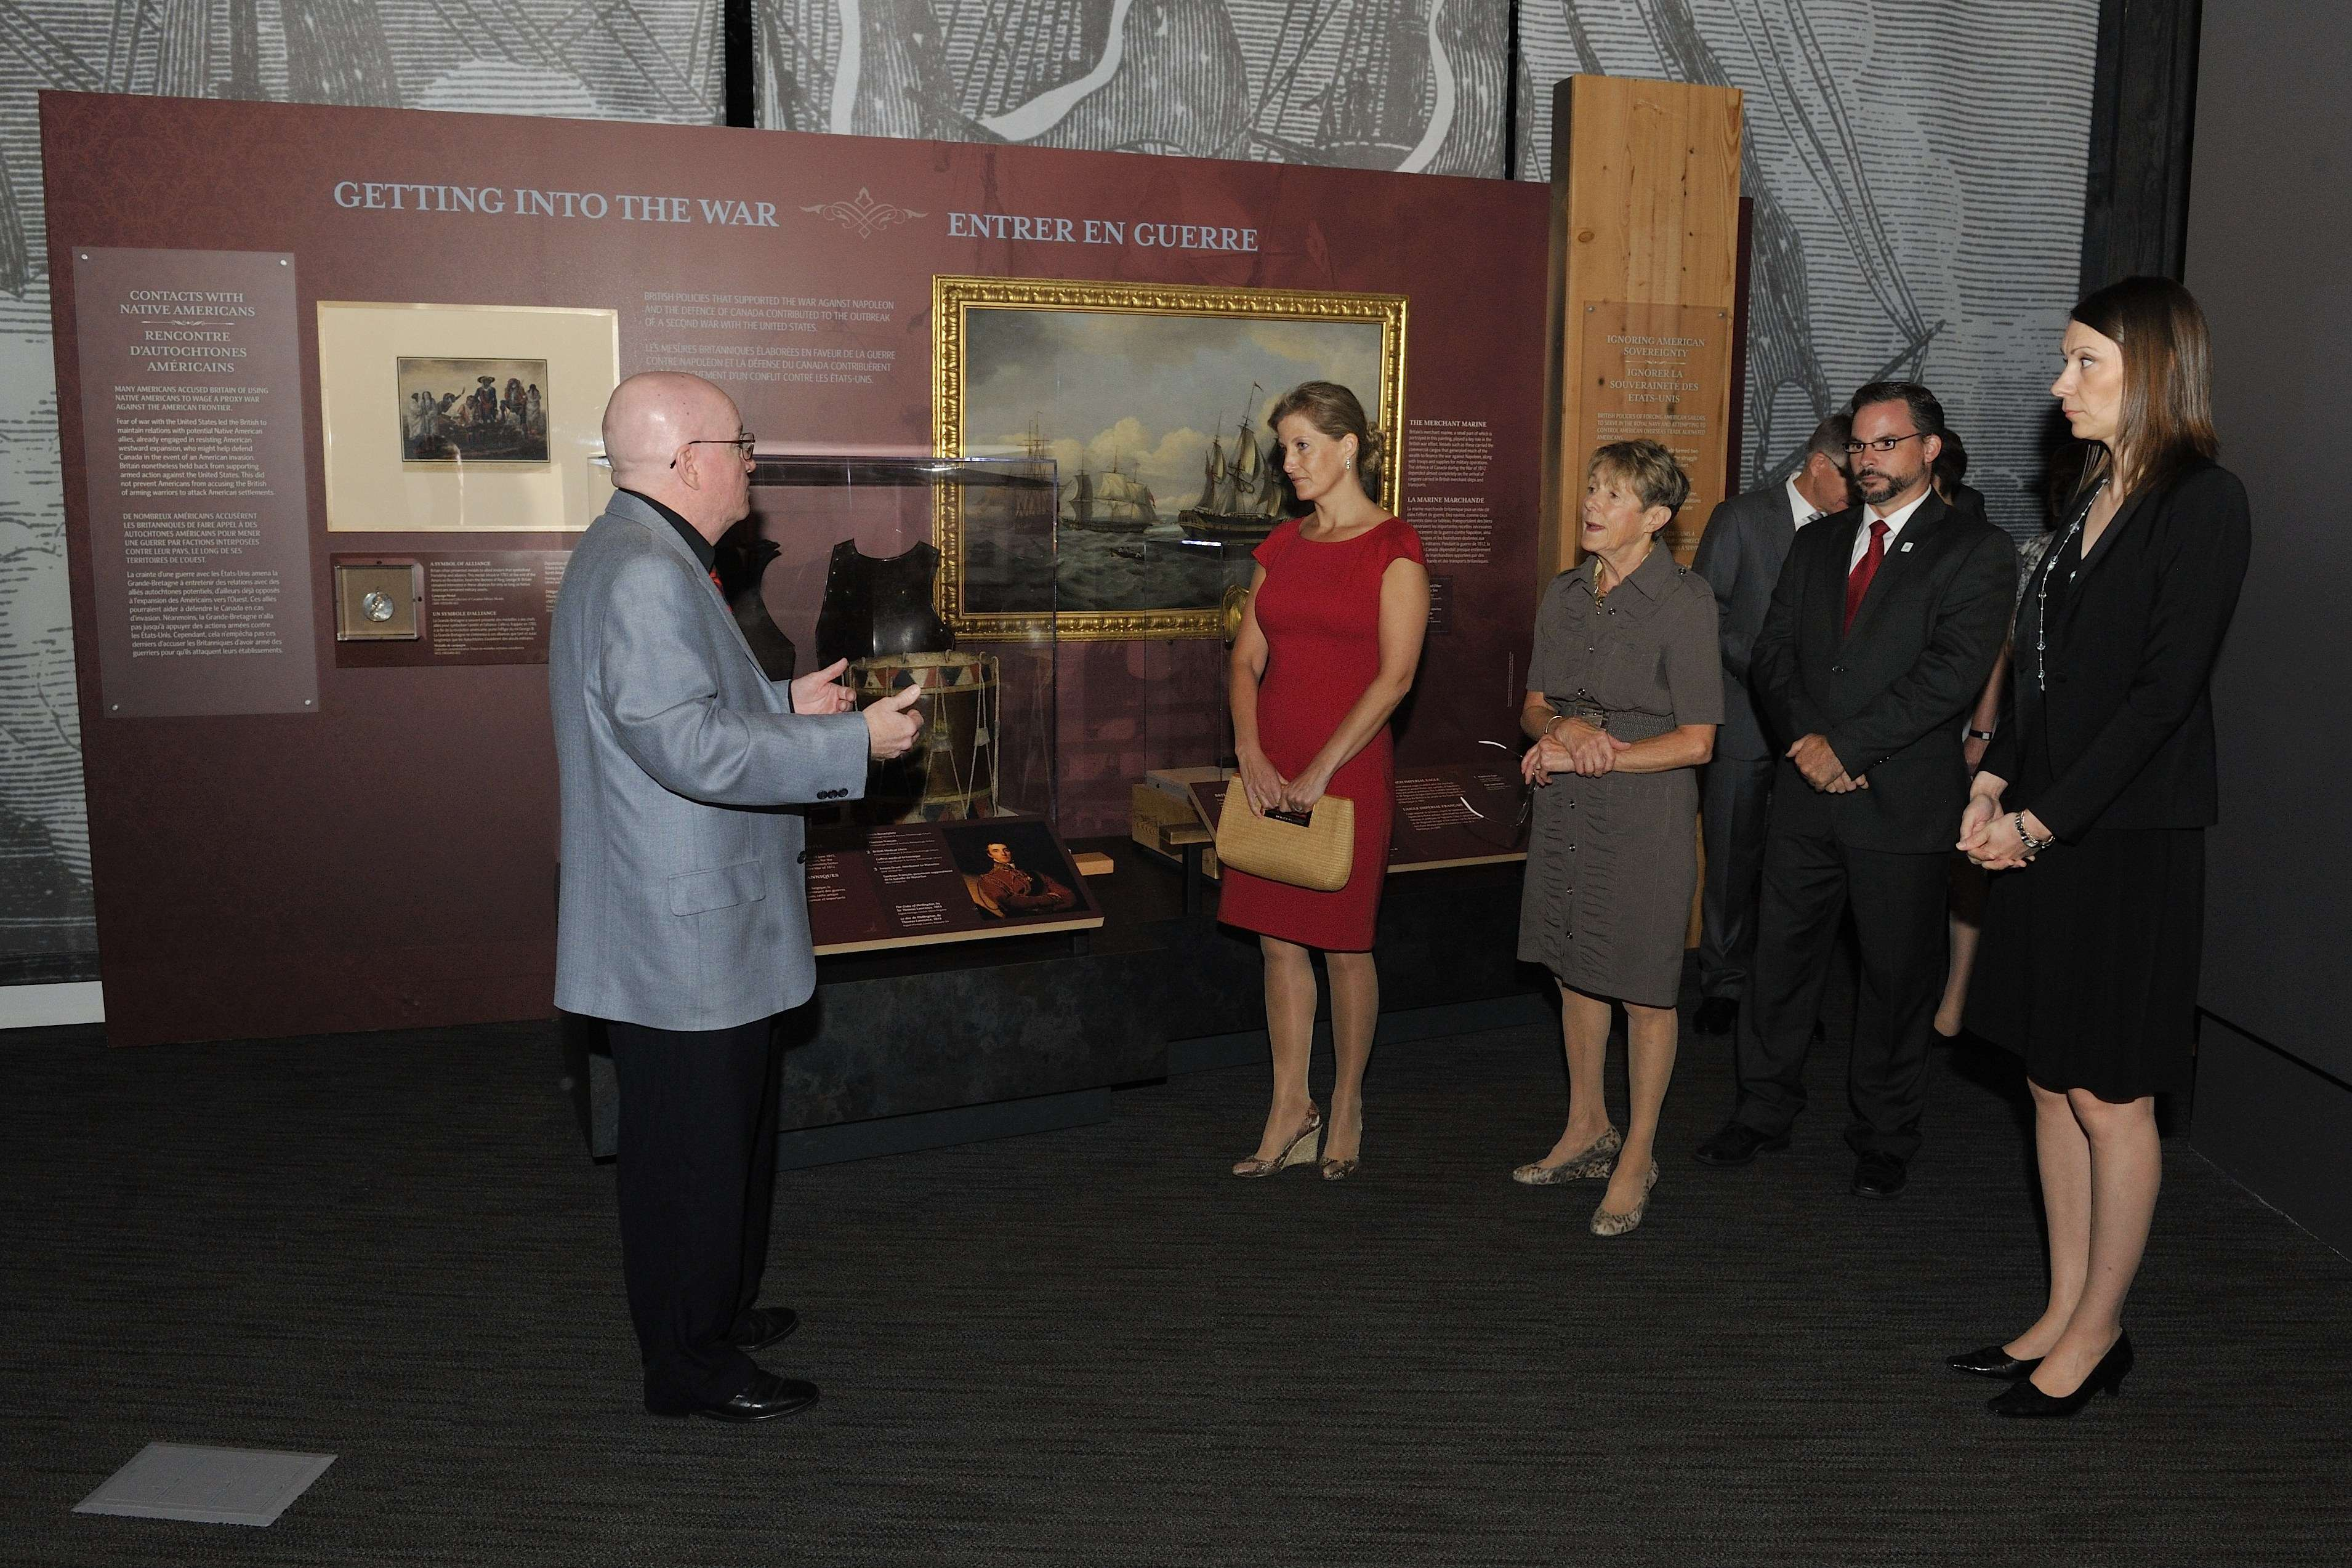 Her Excellency Sharon Johnston joined Her Royal Highness The Countess of Wessex for a tour of the Canadian War Museum's 1812 exhibition.